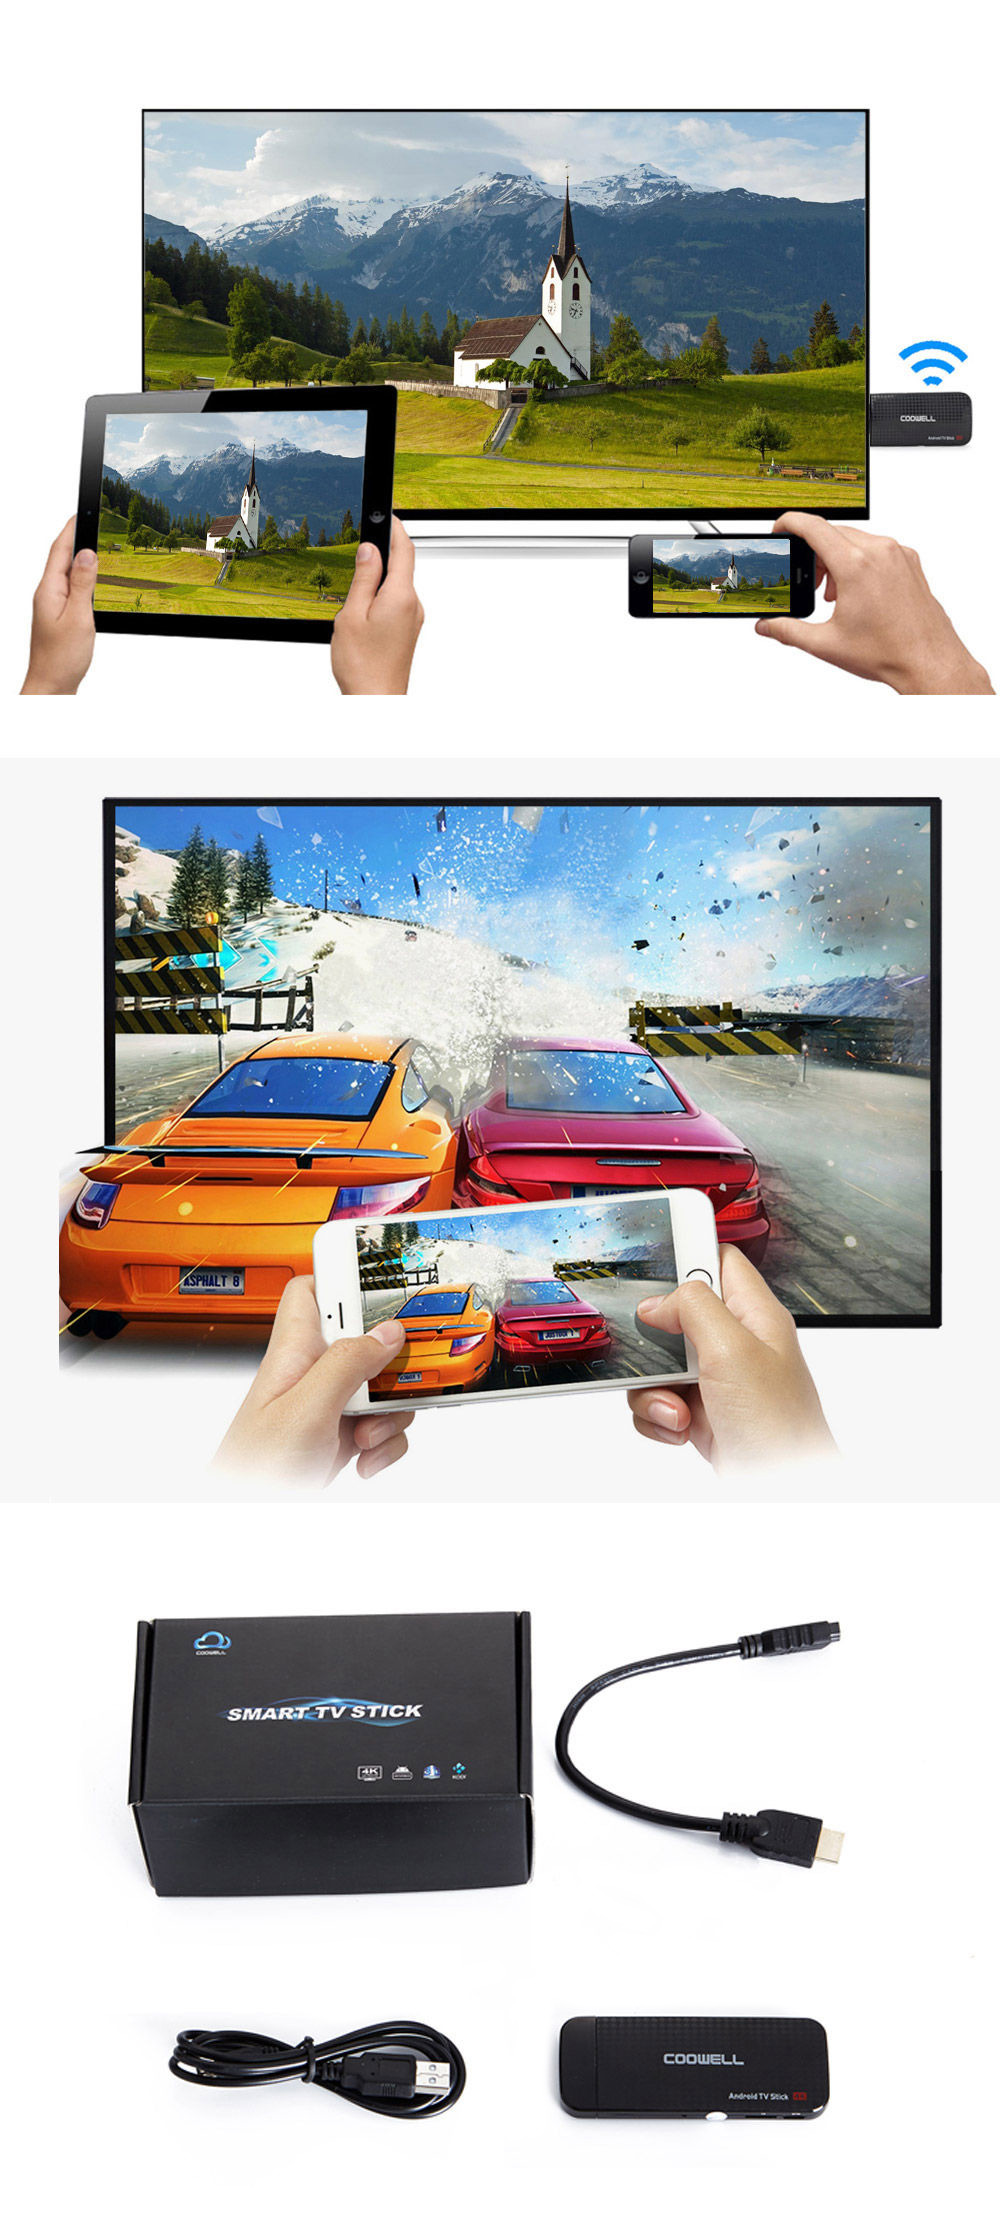 Coowell V5 Android 6 0 Streaming Stick TV Box